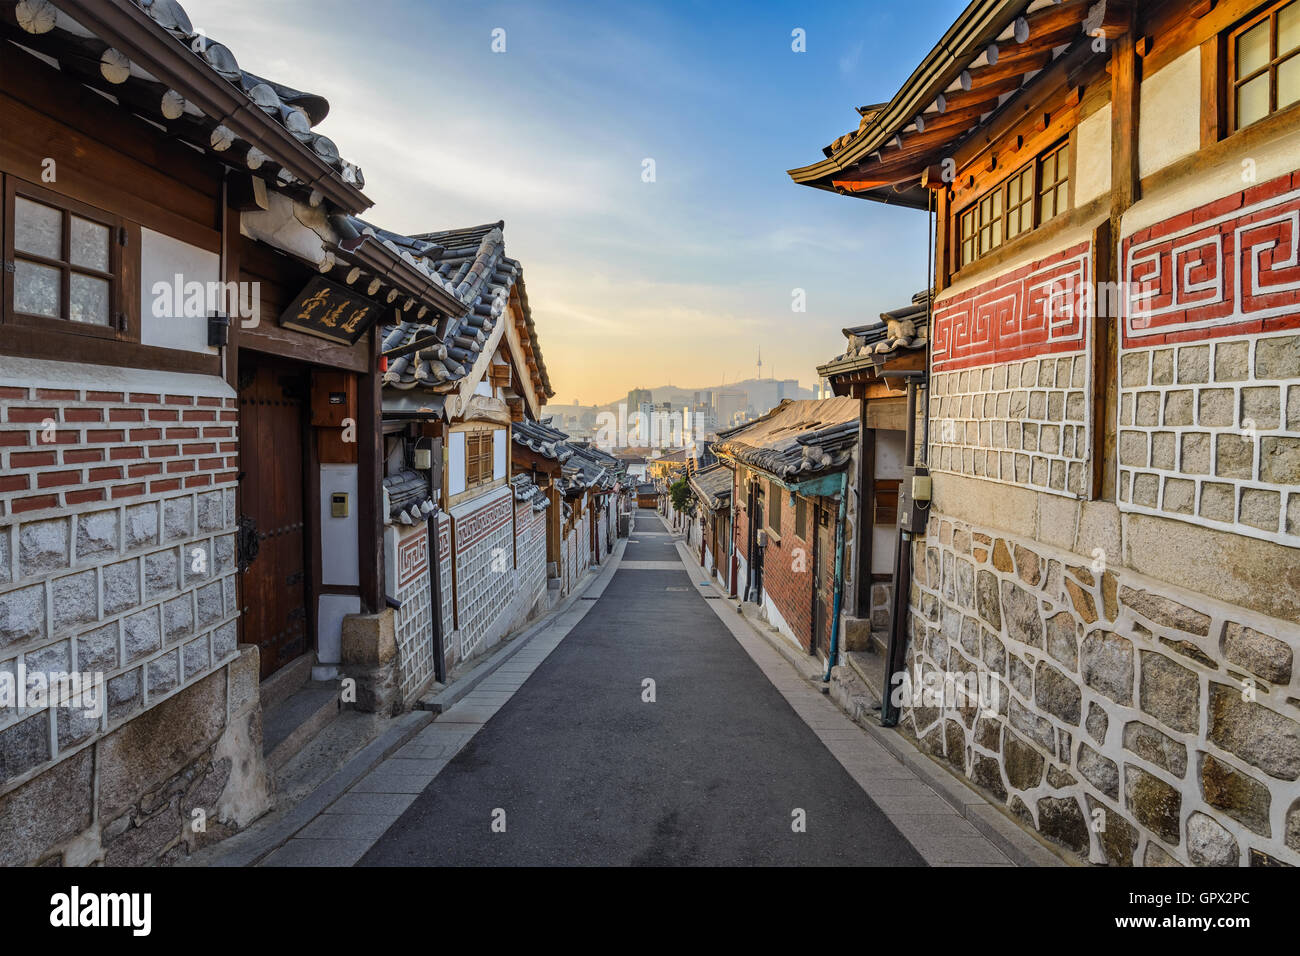 Bukchon Hanok Village, Seoul, South Korea - Stock Image